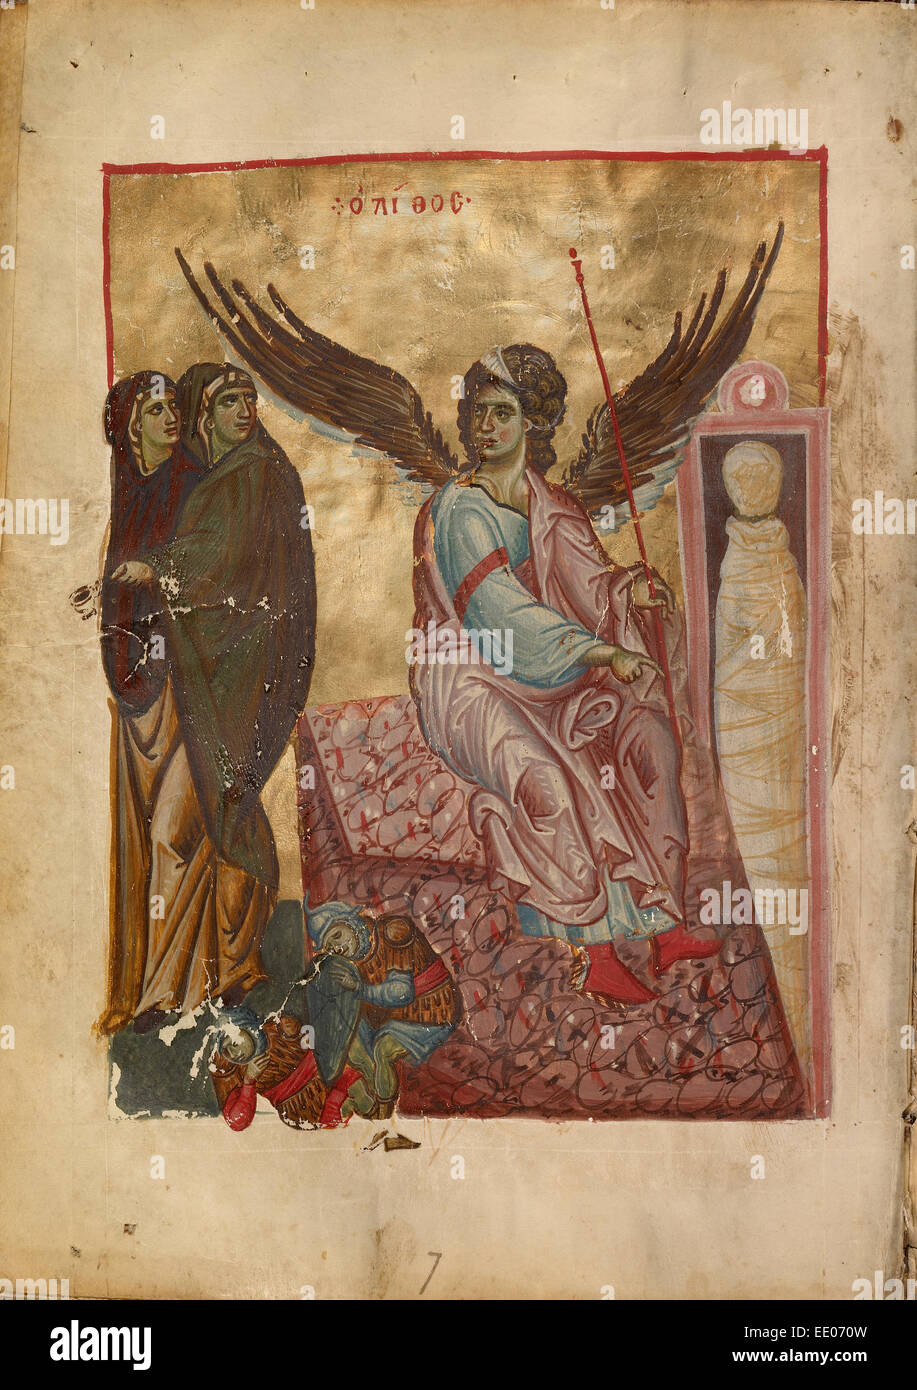 The Women at the Tomb; Unknown; Byzantine Empire; early 13th century - late 13th century; Tempera colors and gold - Stock Image